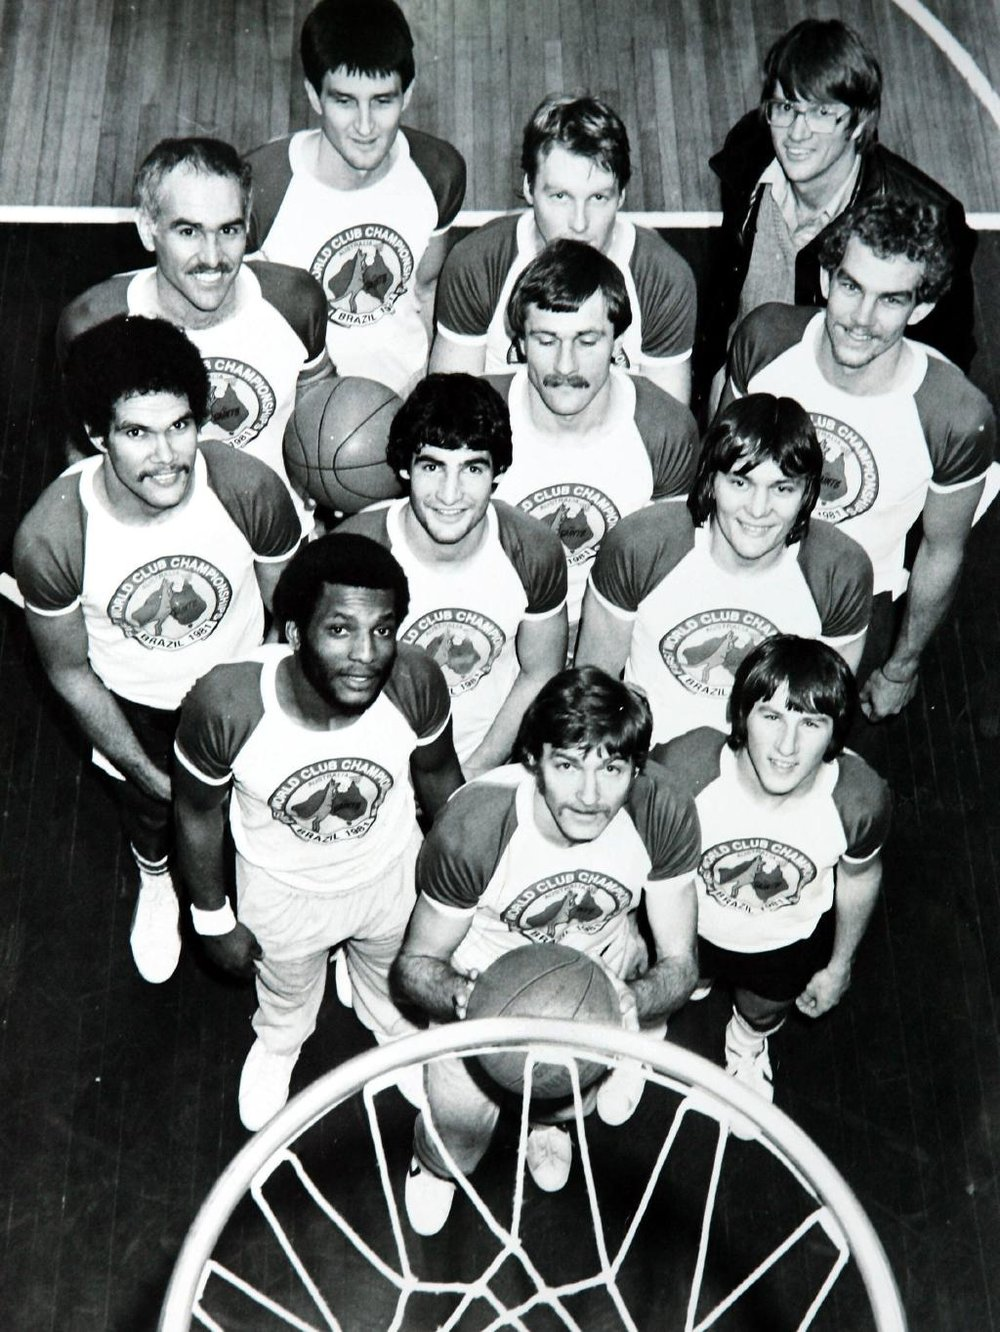 Danny Morseu, Brian Kerle and St Kilda's 1980 NBL champion team